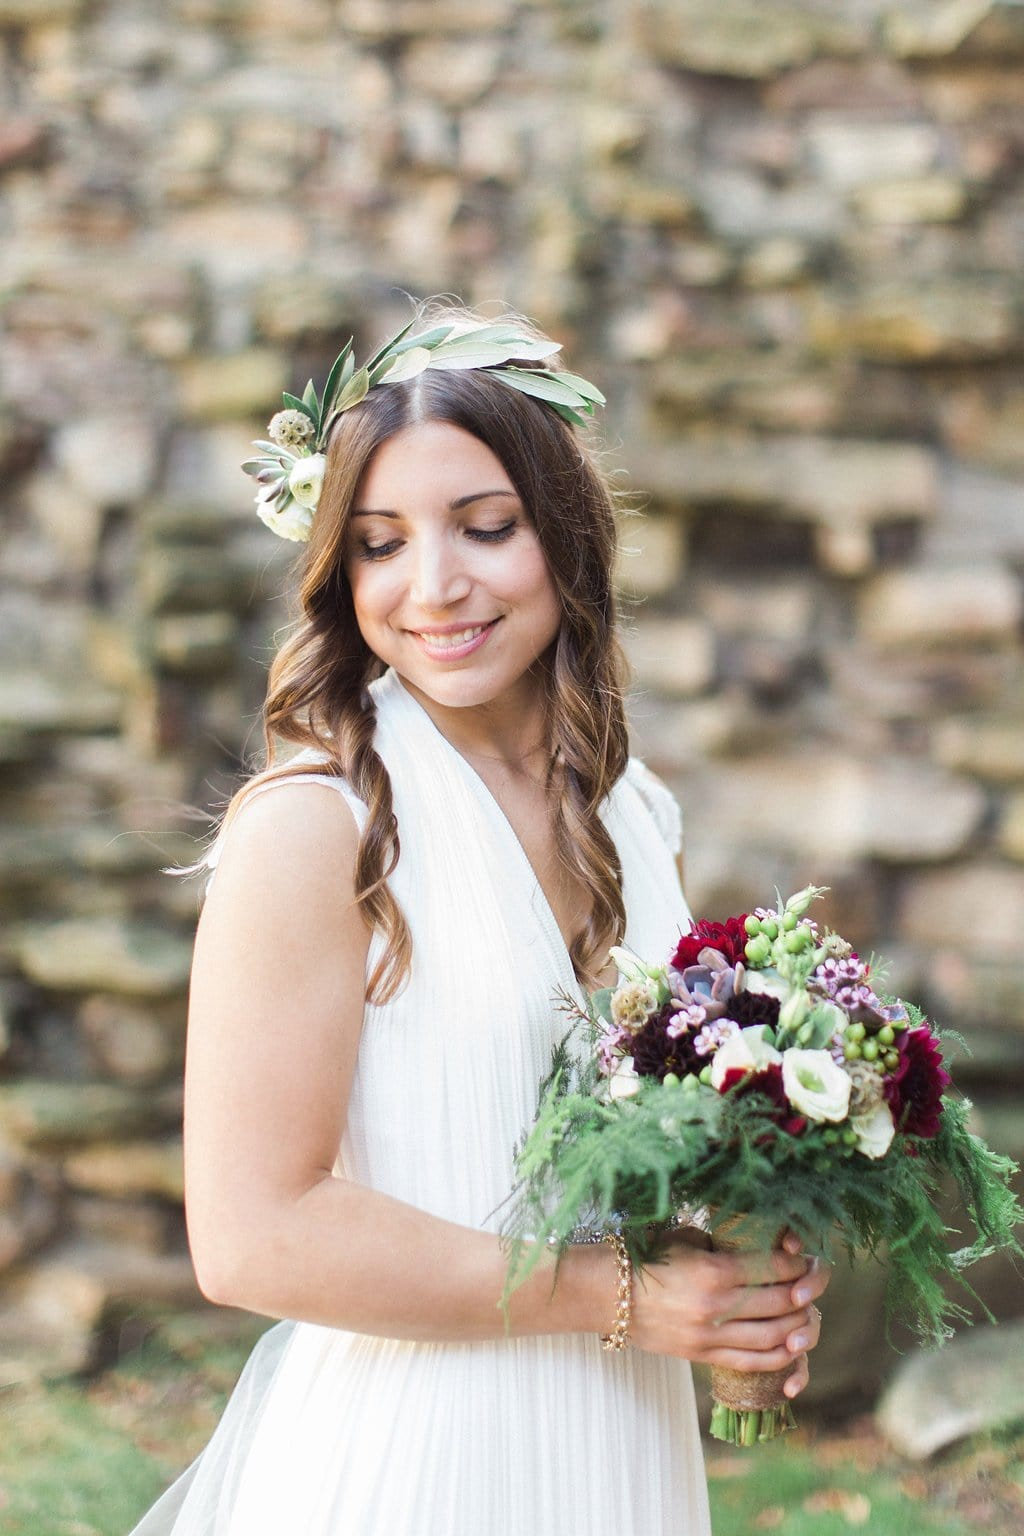 Bride in boho chic BHLD dress with eucalyptus flower crown and purple bouquet